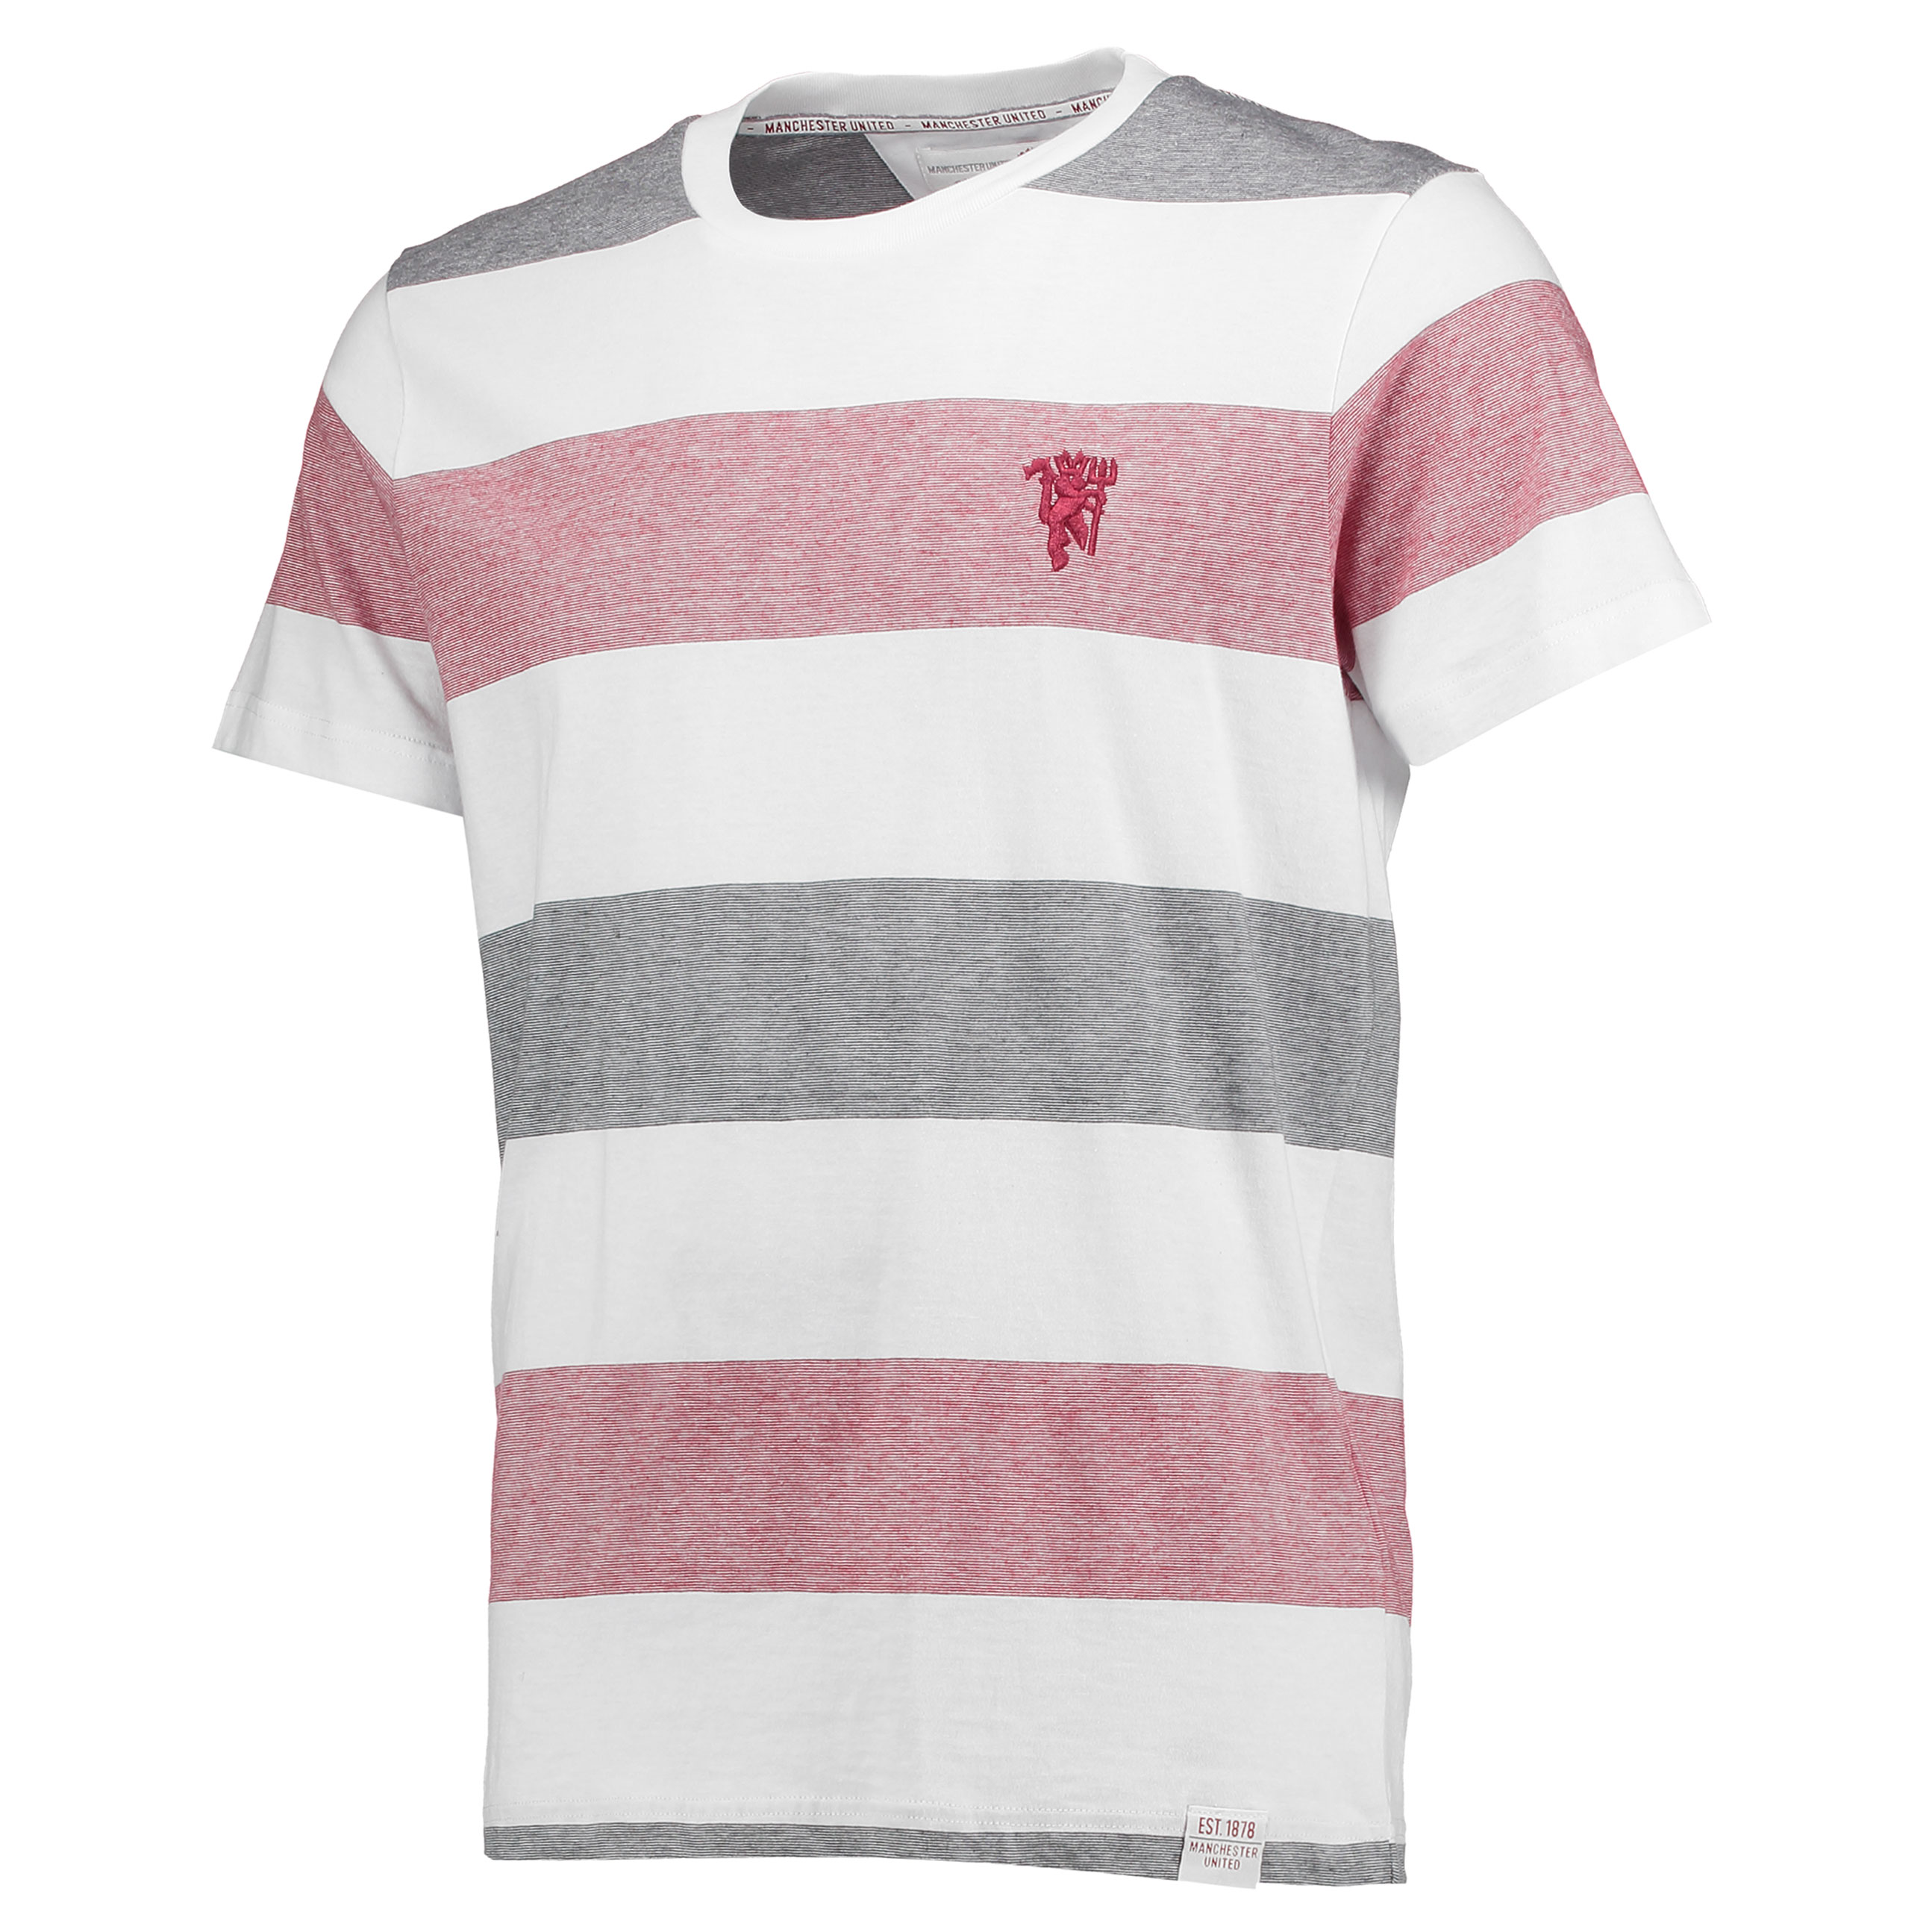 Manchester United Lifestyle Stripe T-Shirt - White/Brick Red - Mens